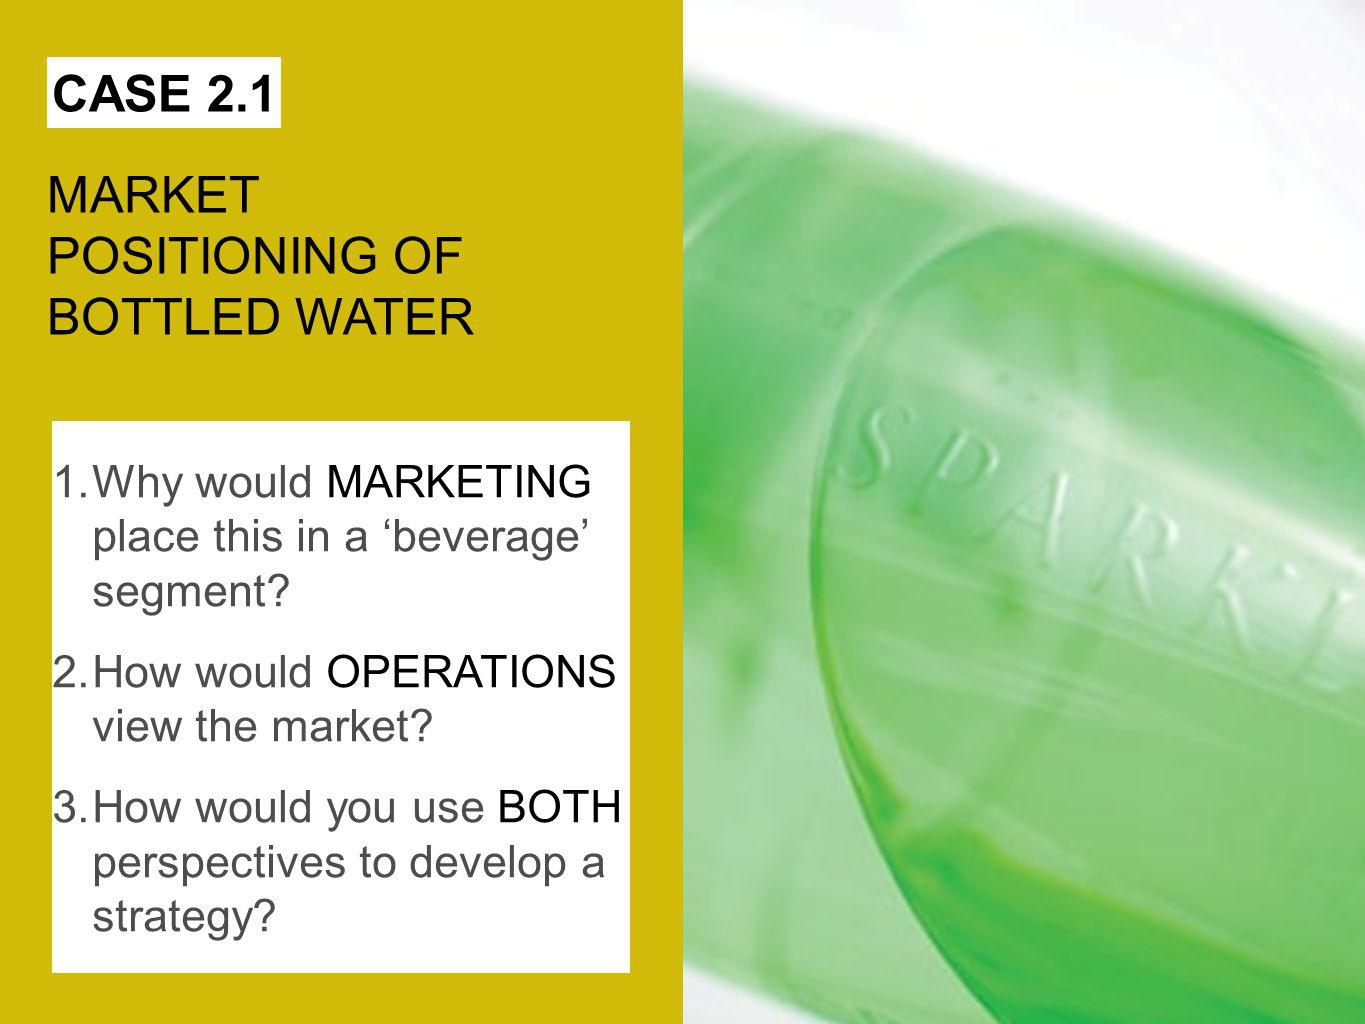 MARKET POSITIONING OF BOTTLED WATER